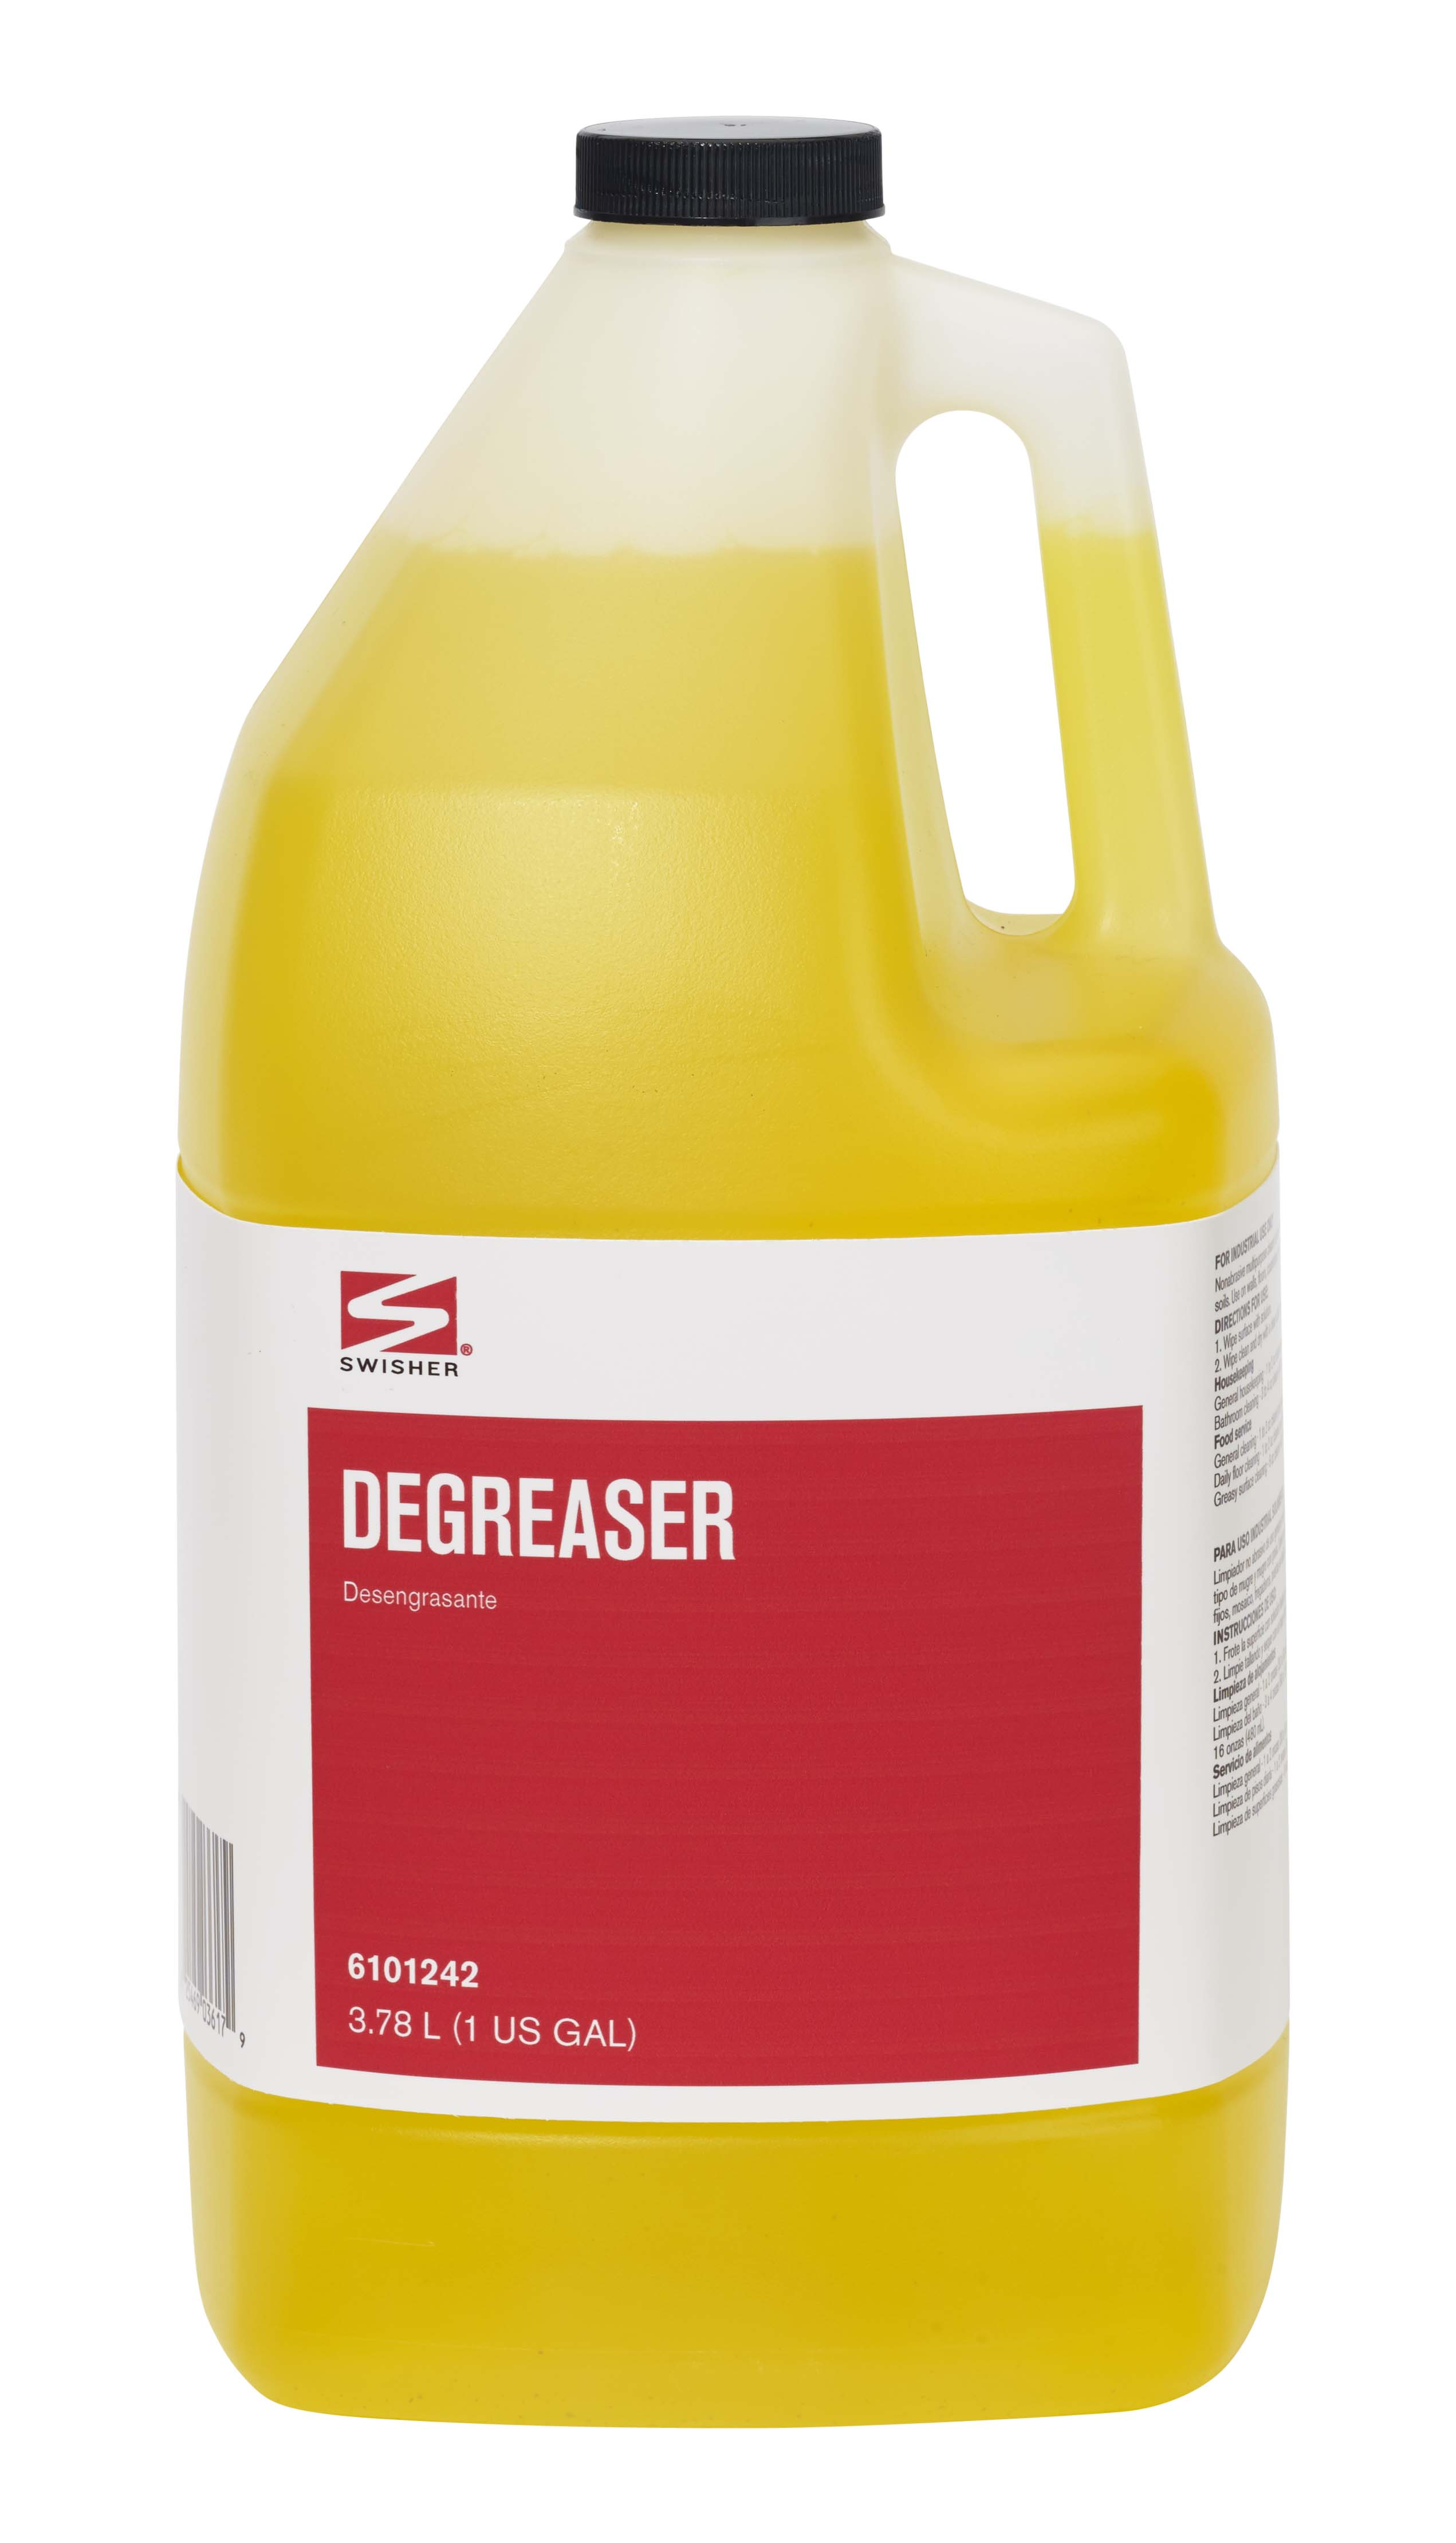 Swisher Degreaser